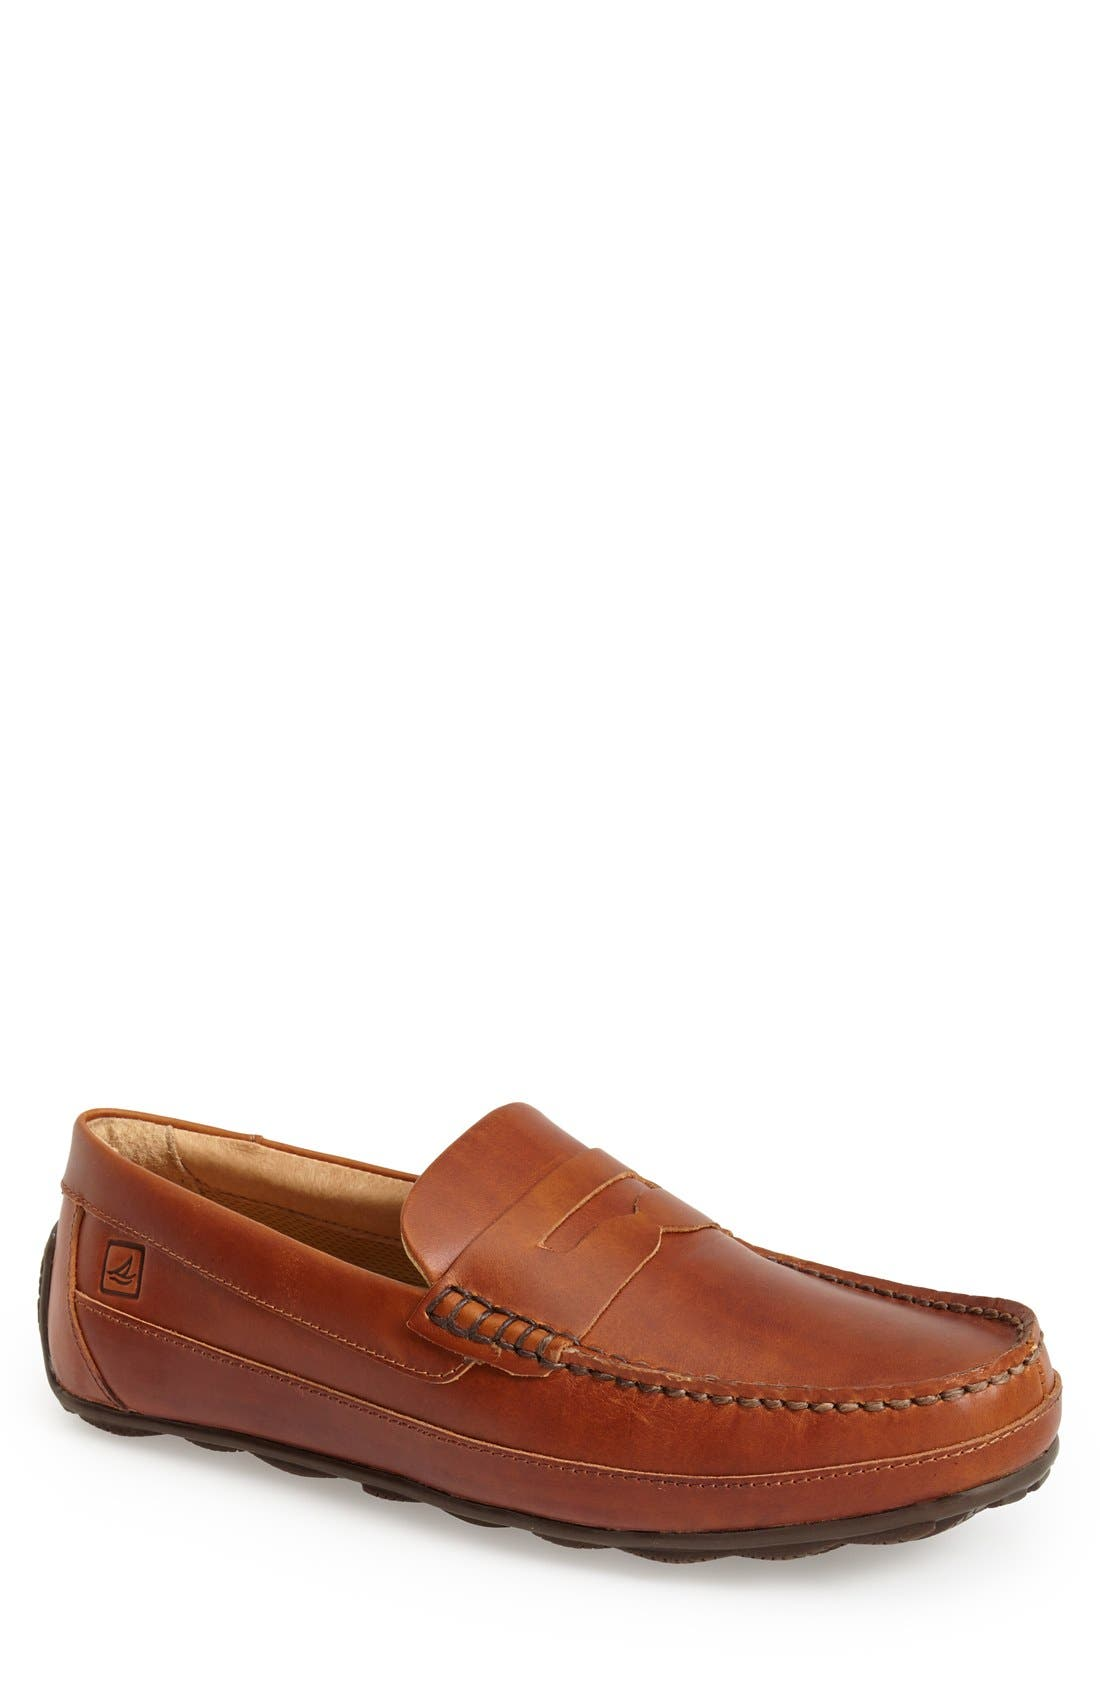 2e08f7314ba ... UPC 044211067643 product image for Men s Sperry Top-Sider  Hampden   Penny Loafer Tan